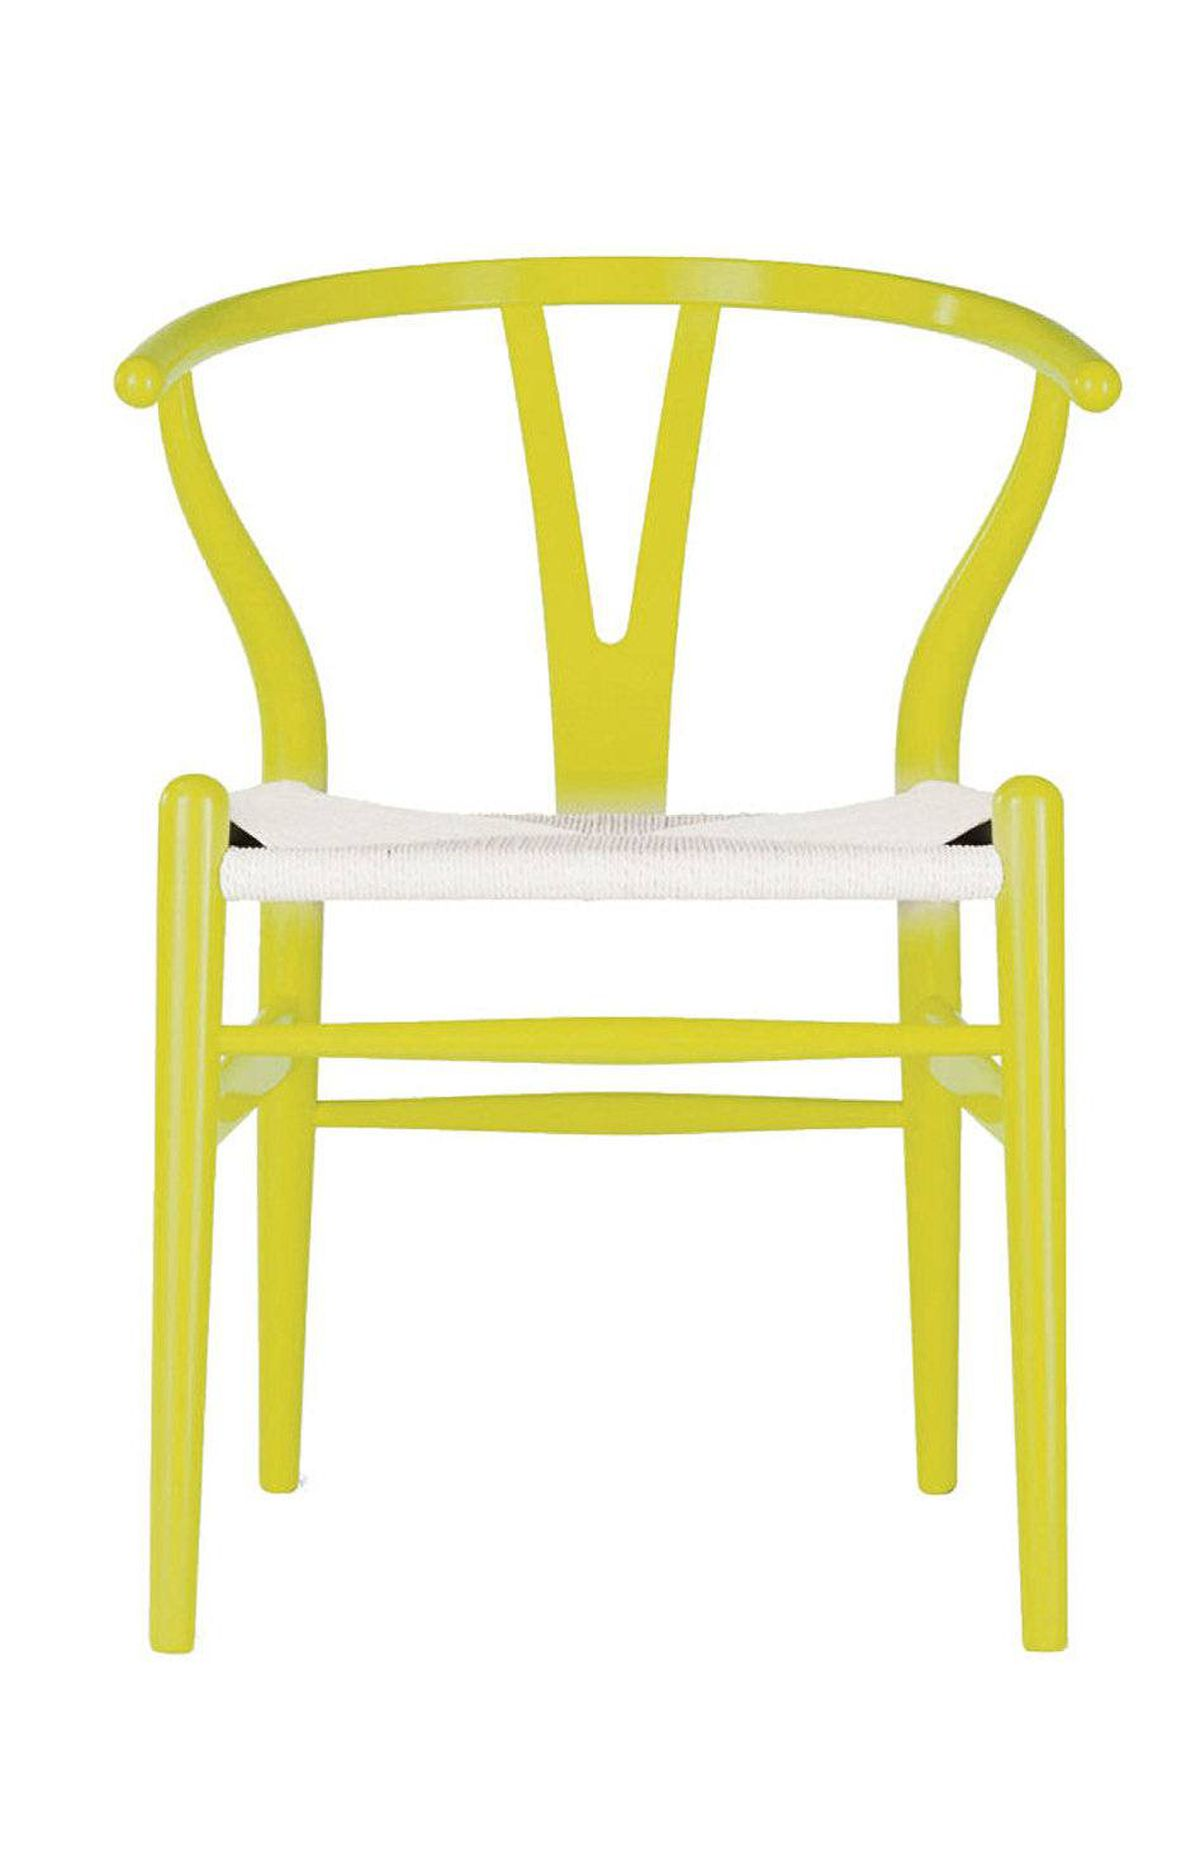 hans wegner chairs design within reach cheap kids 7 ways to add a splash of citrus style your life the